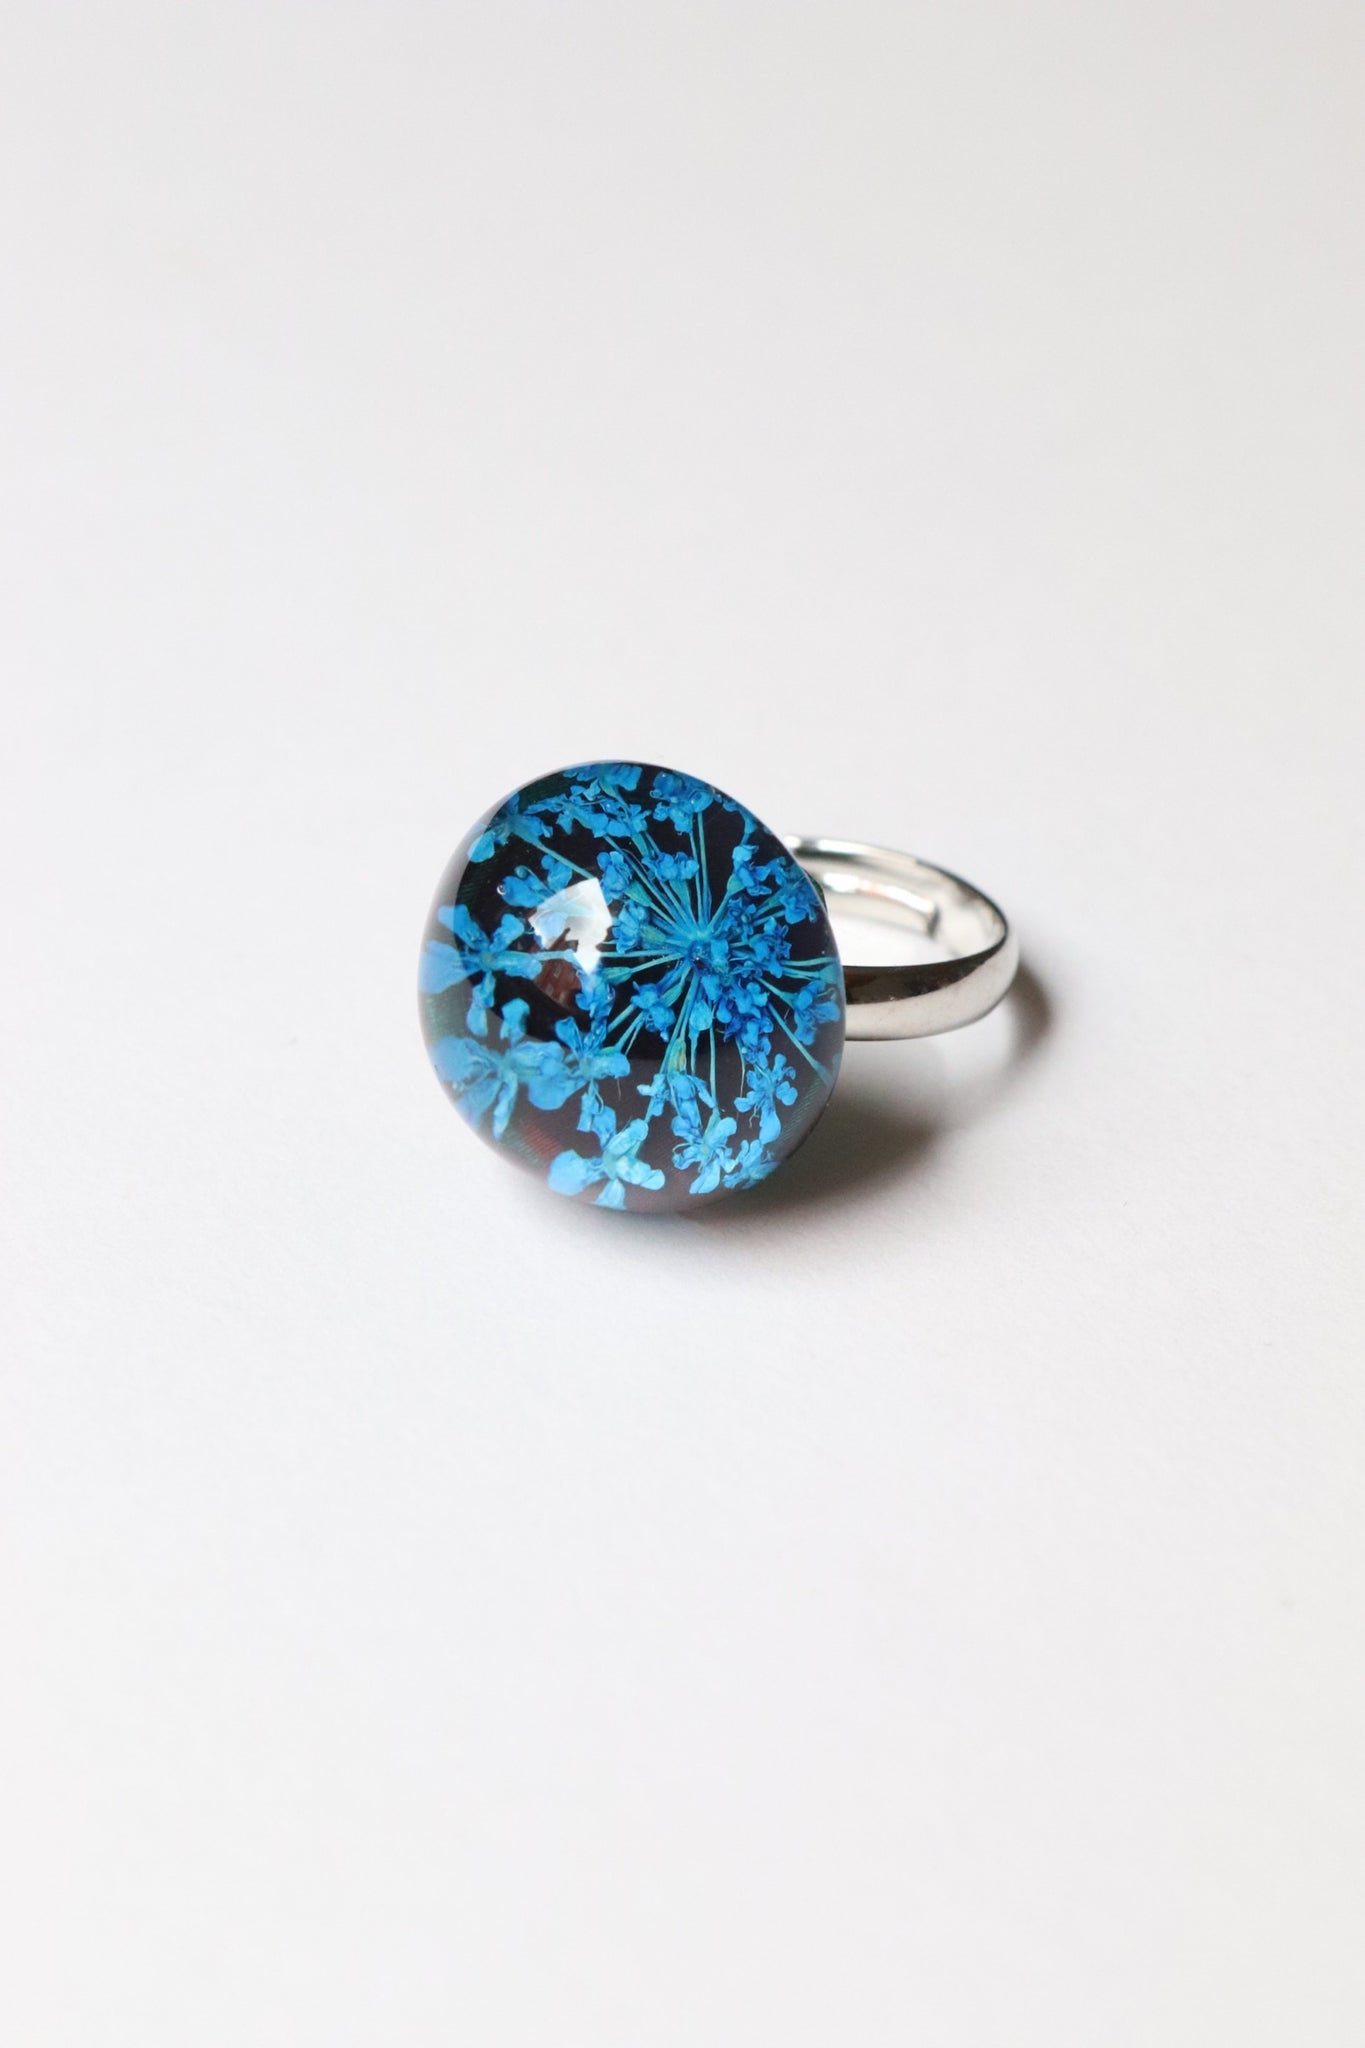 Dried Flower Ring Blue over Black